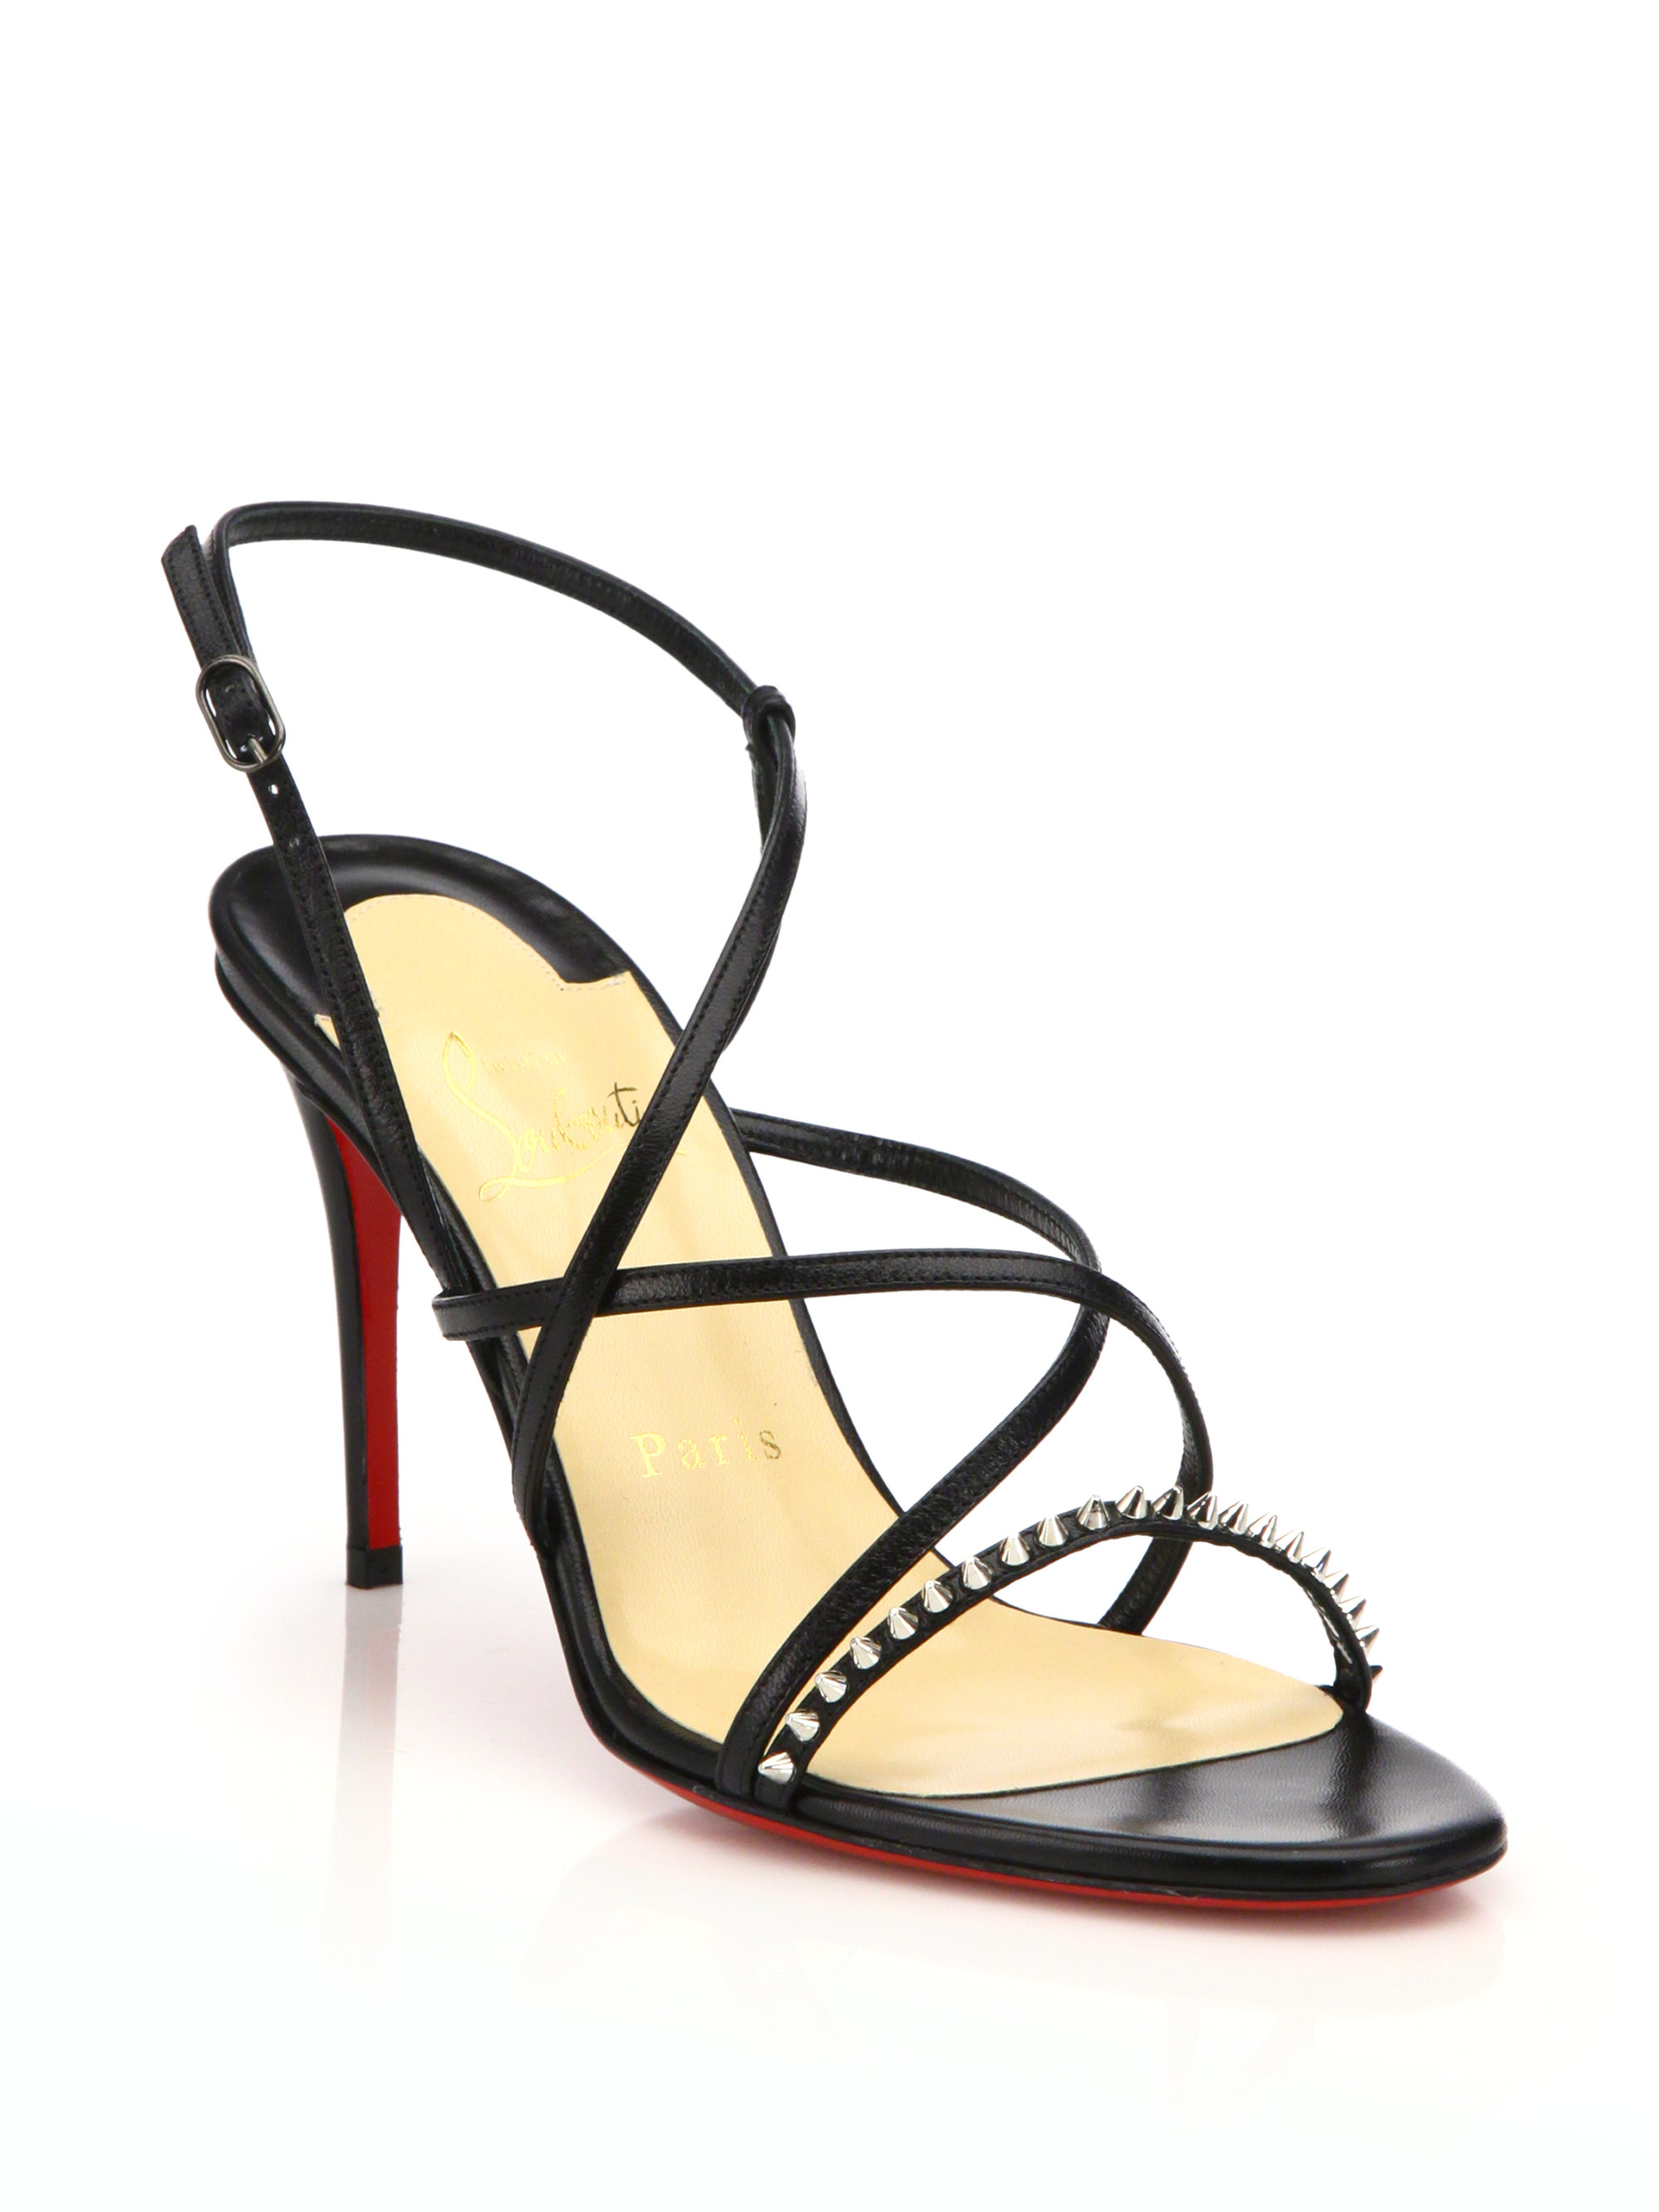 louboutin black strappy sandals